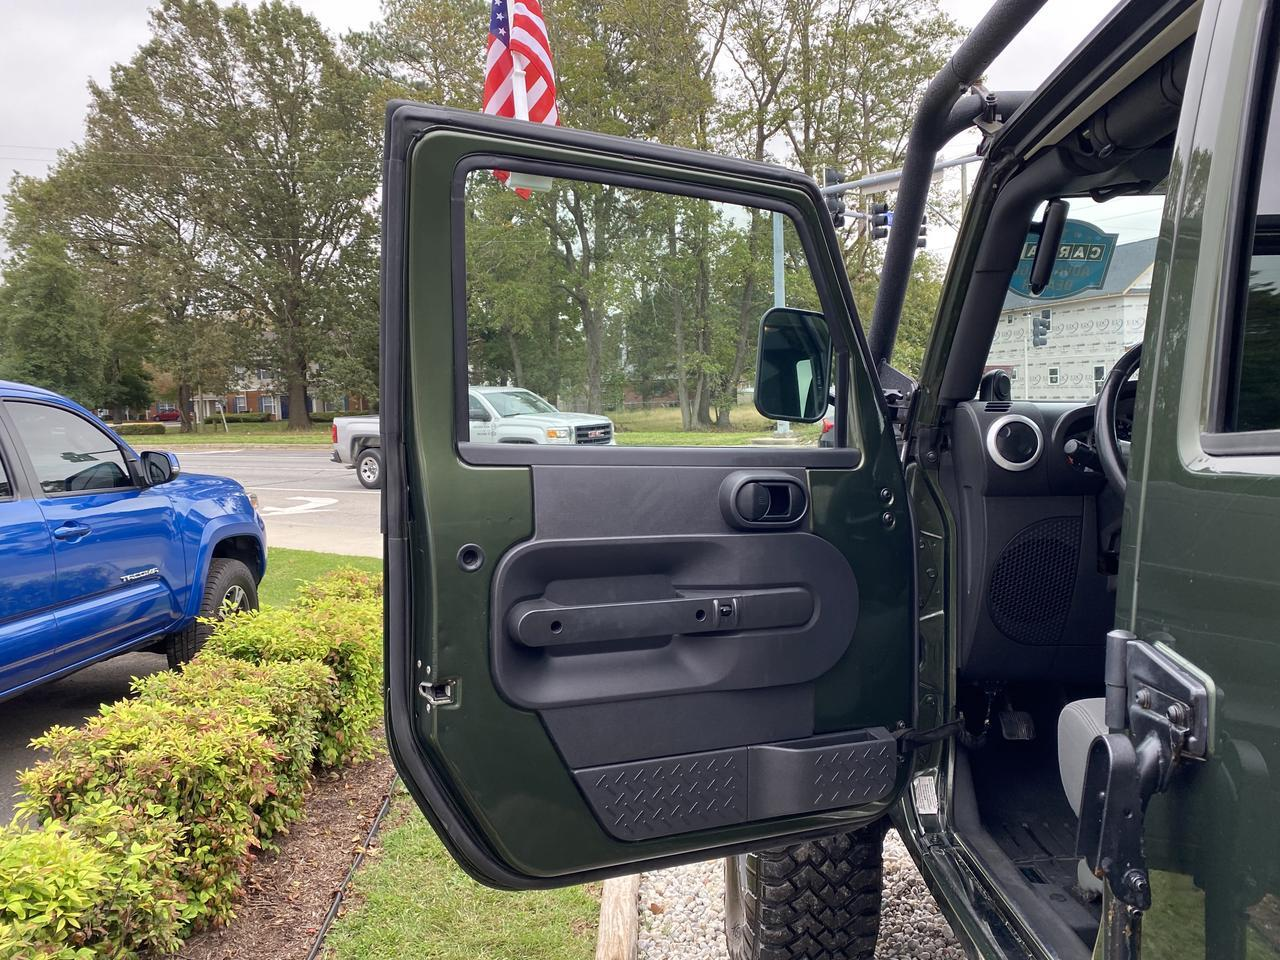 2008 JEEP WRANGLER UNLIMITED SAHARA 4X4, WARRANTY, LIFTED, MANUAL, NAVIGATION, WICKED JEEP WITH LOW MILES, MUST SEE!!! Norfolk VA